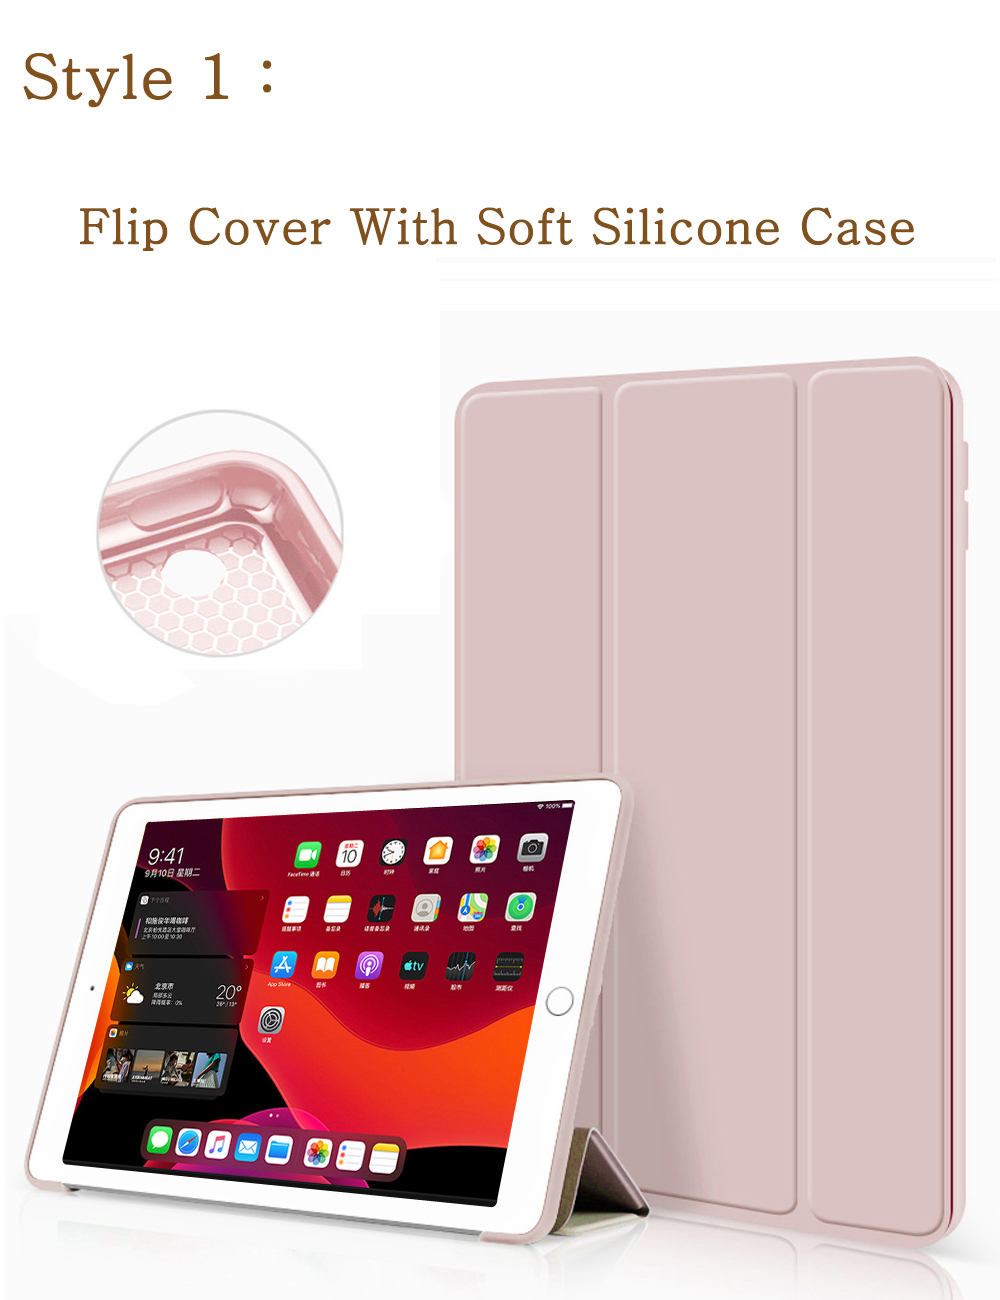 7th Magnetic for Smart-Cover A2197 Shell Soft-Silicone iPad Apple 8th-Generation-Case